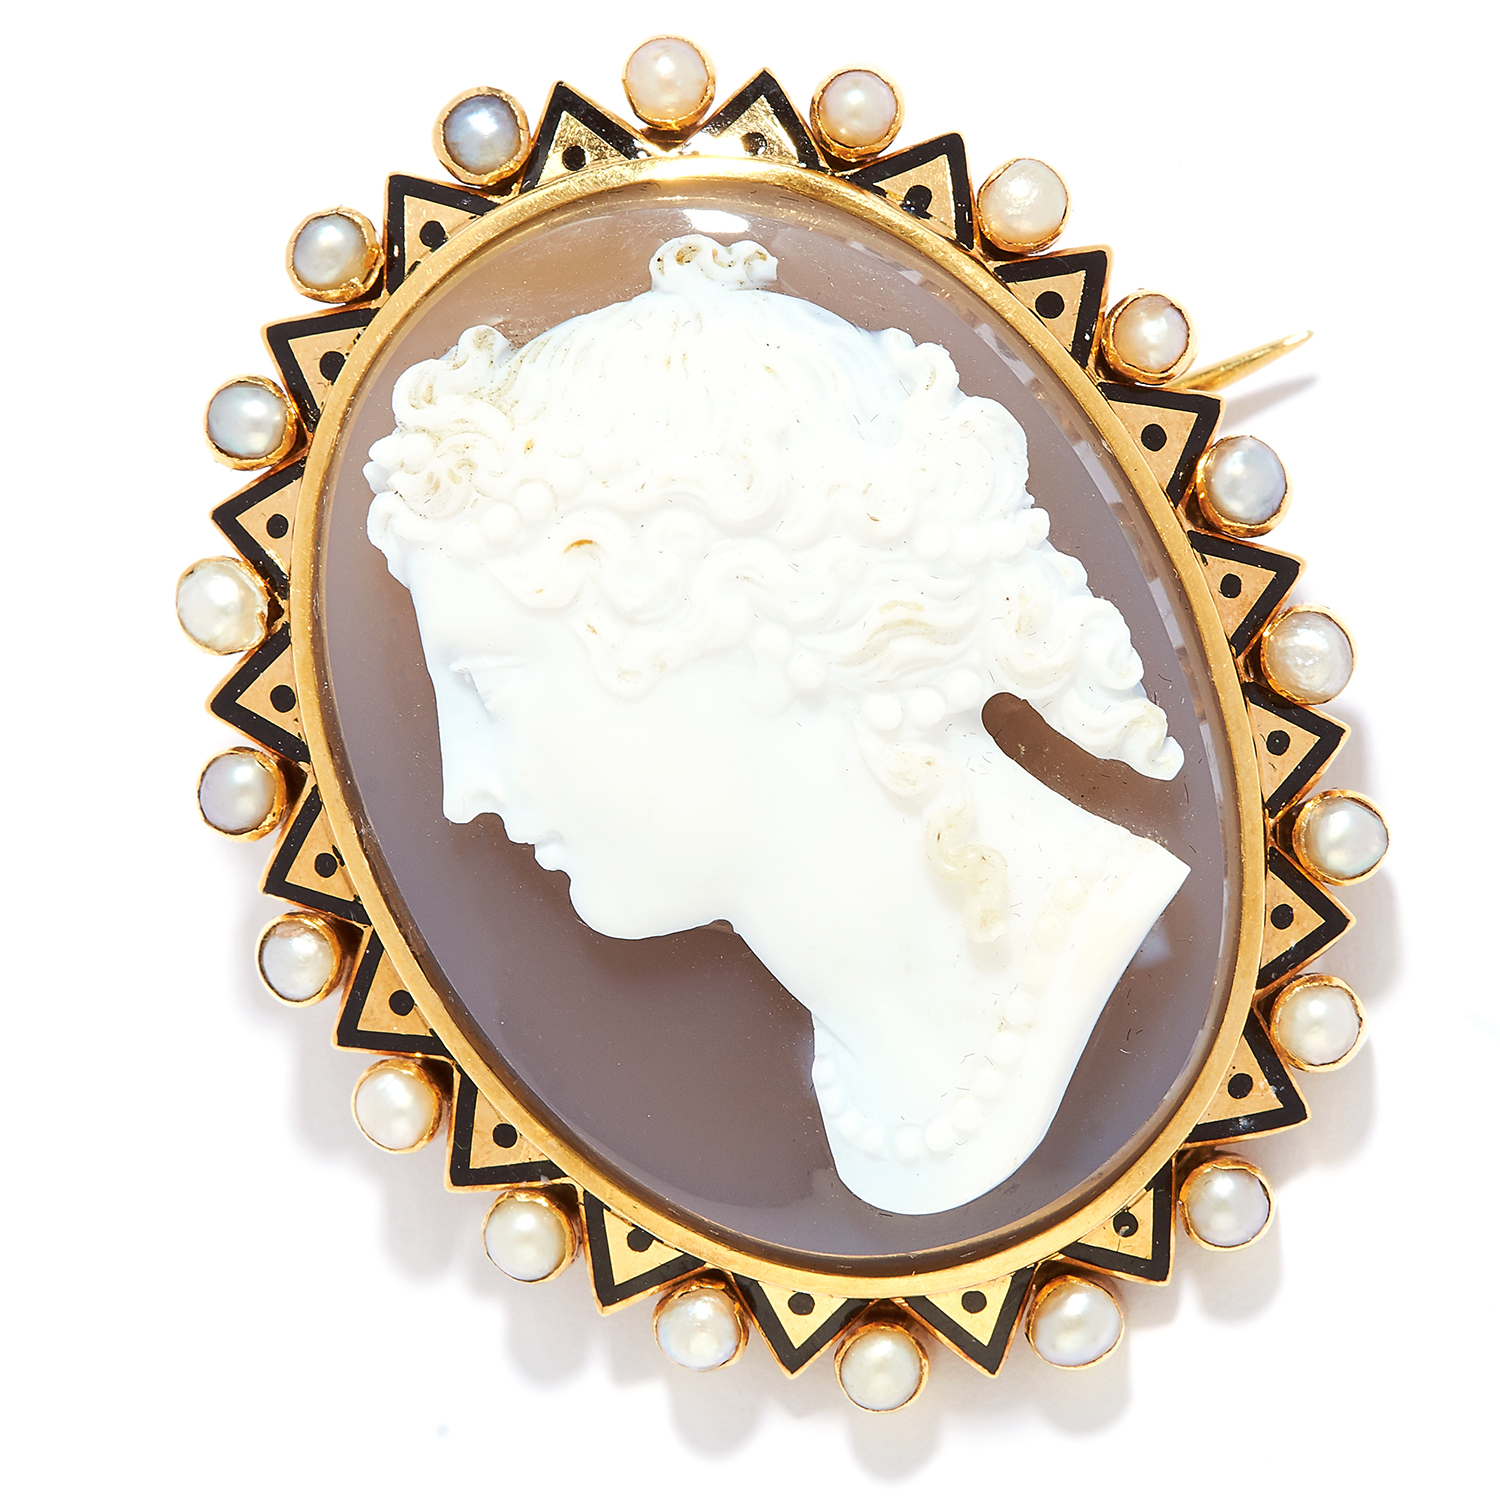 Los 17 - ANTIQUE CARVED CAMEO, PEARL AND ENAMEL BROOCH in high carat yellow gold, depicting a lady in a